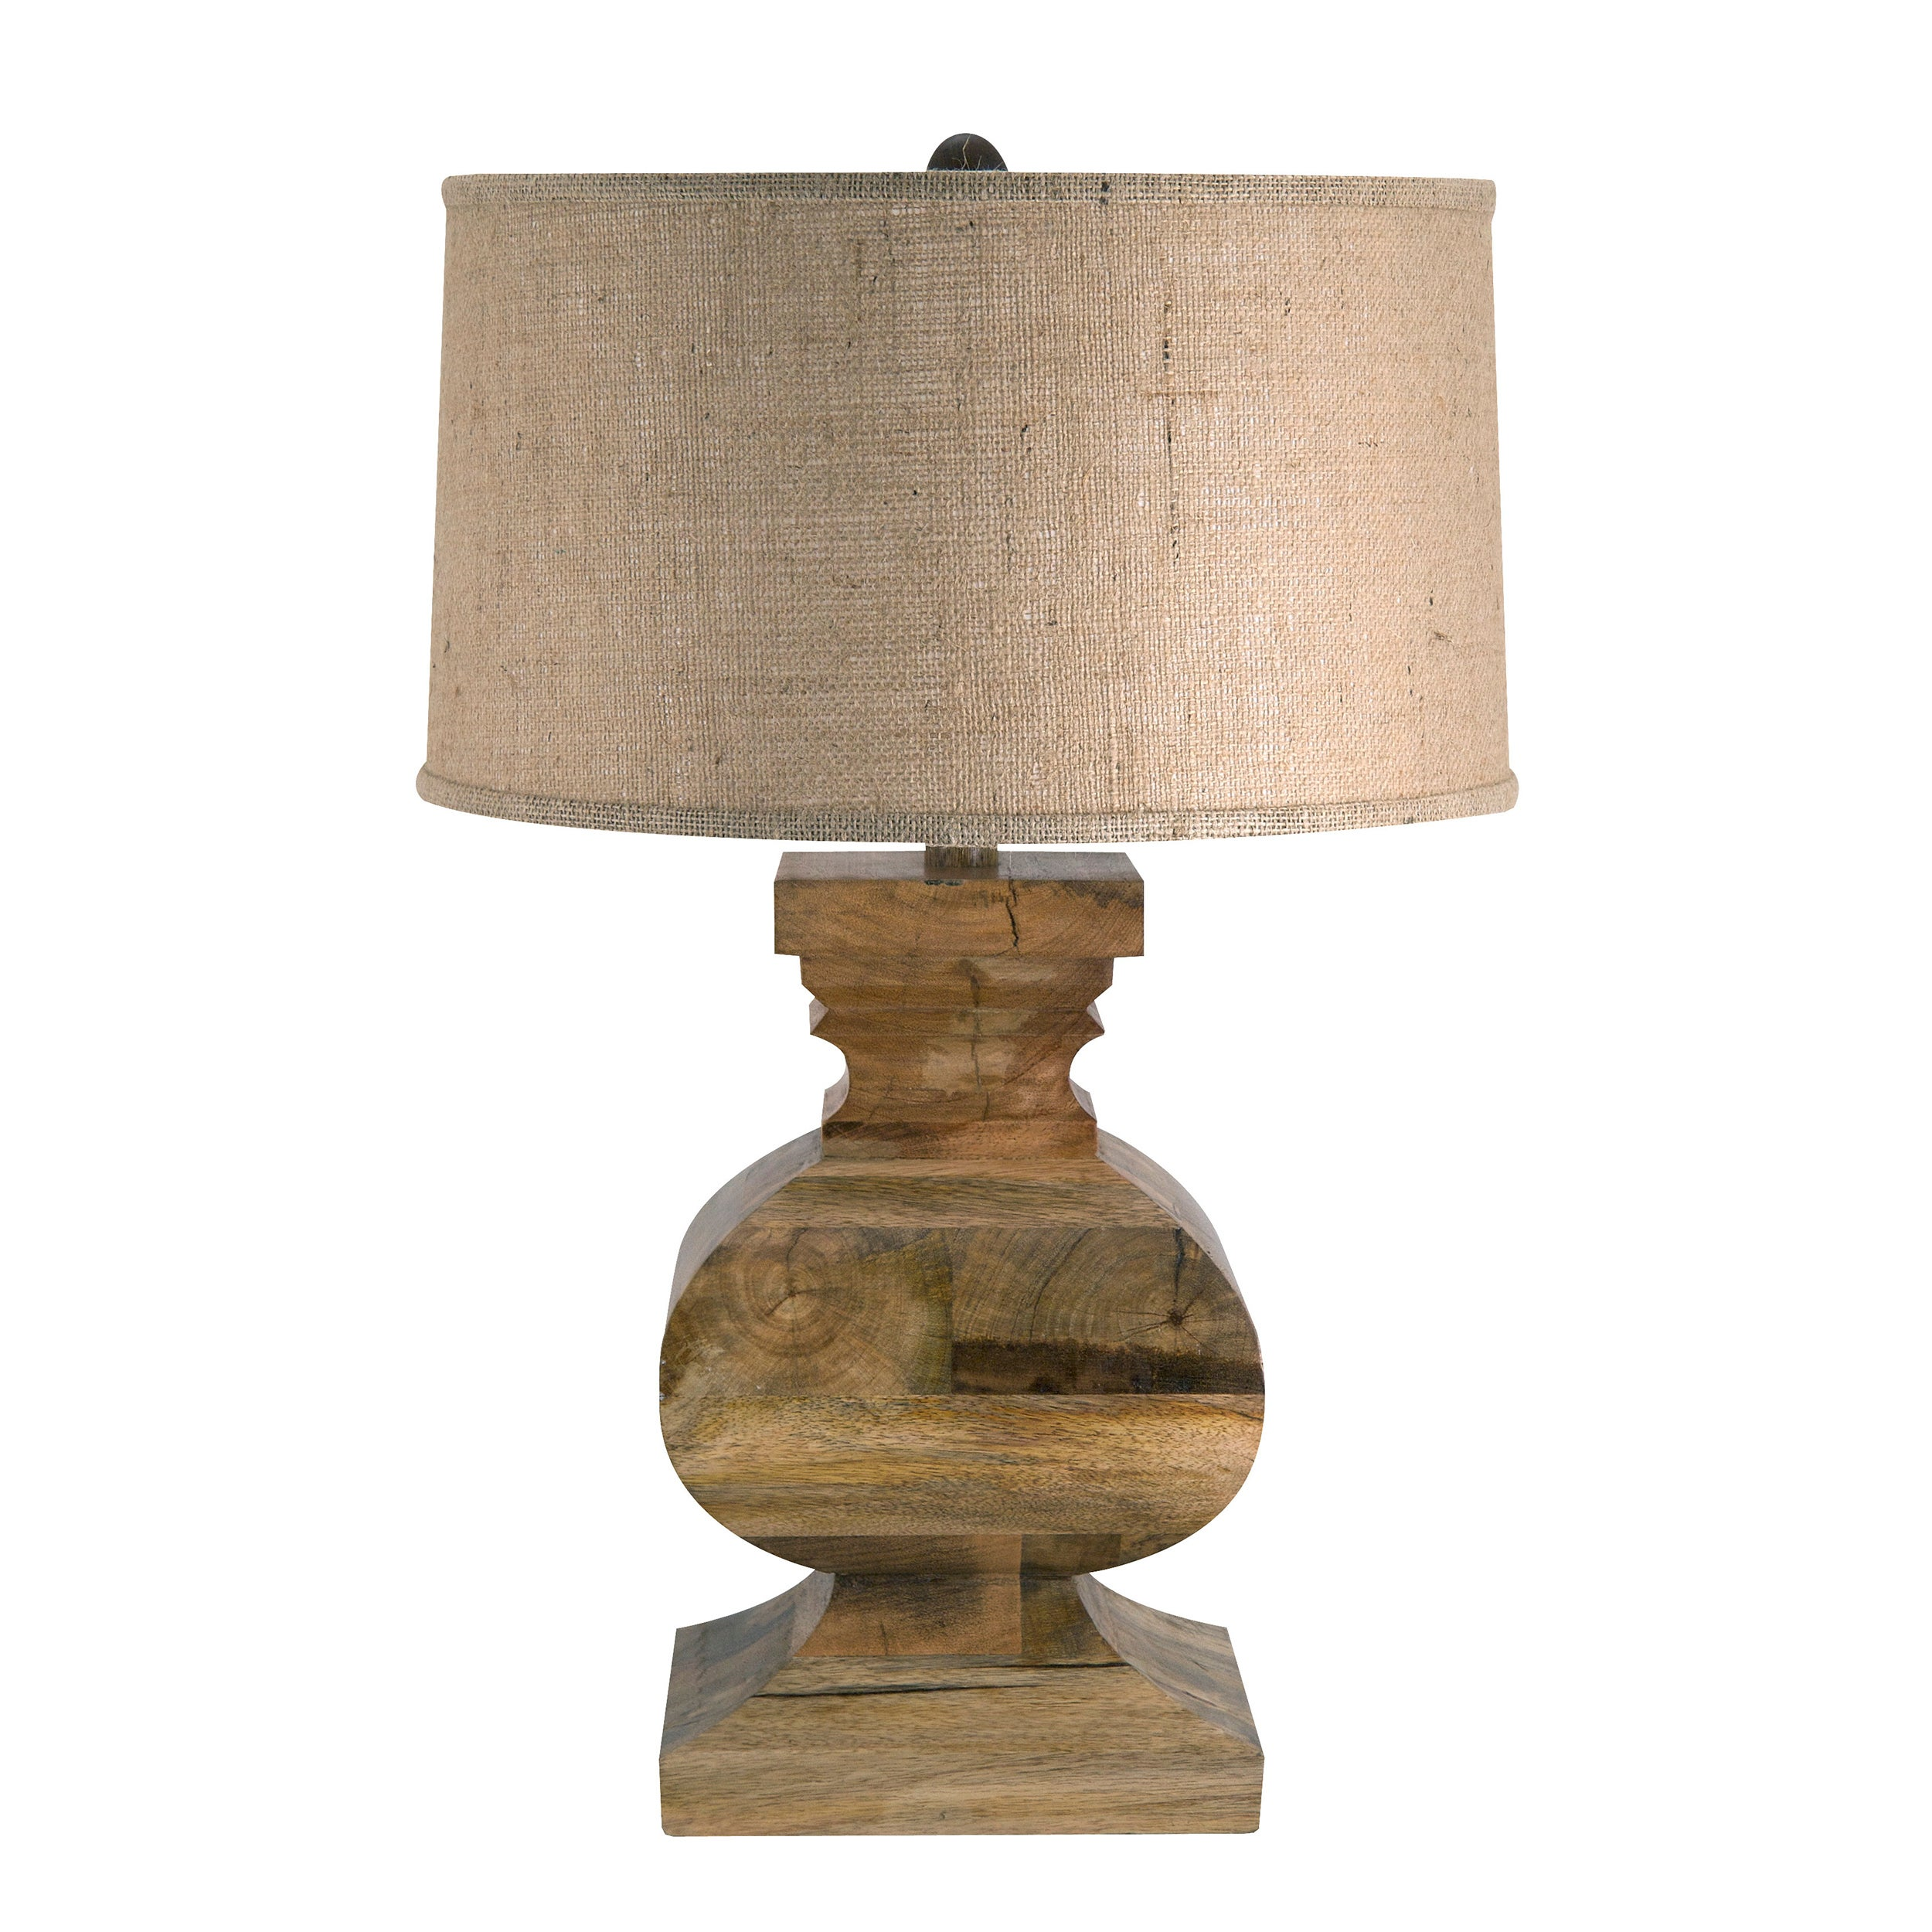 Solid Wood Curved Block Lamp